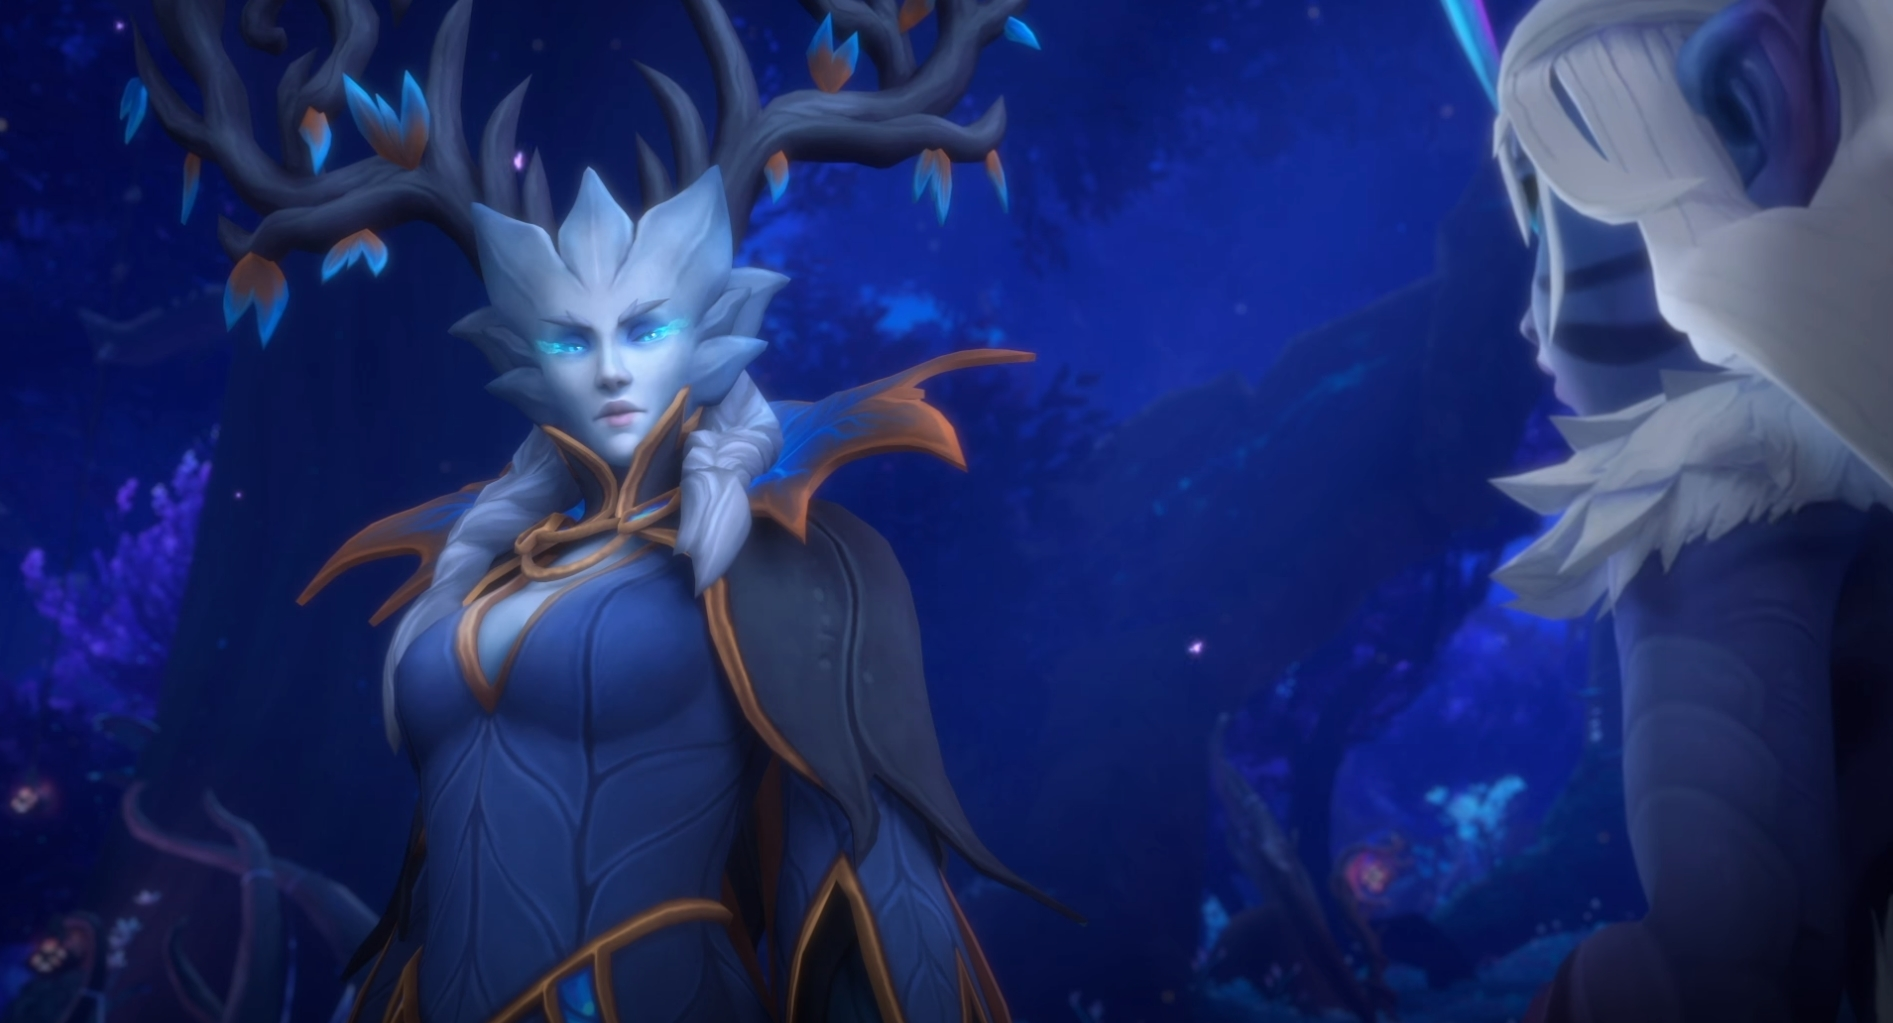 World Of Warcraft: Shadowlands' Ardenweald Receives A Sneak Peak In Blizzard's Shadowlands From Above Series